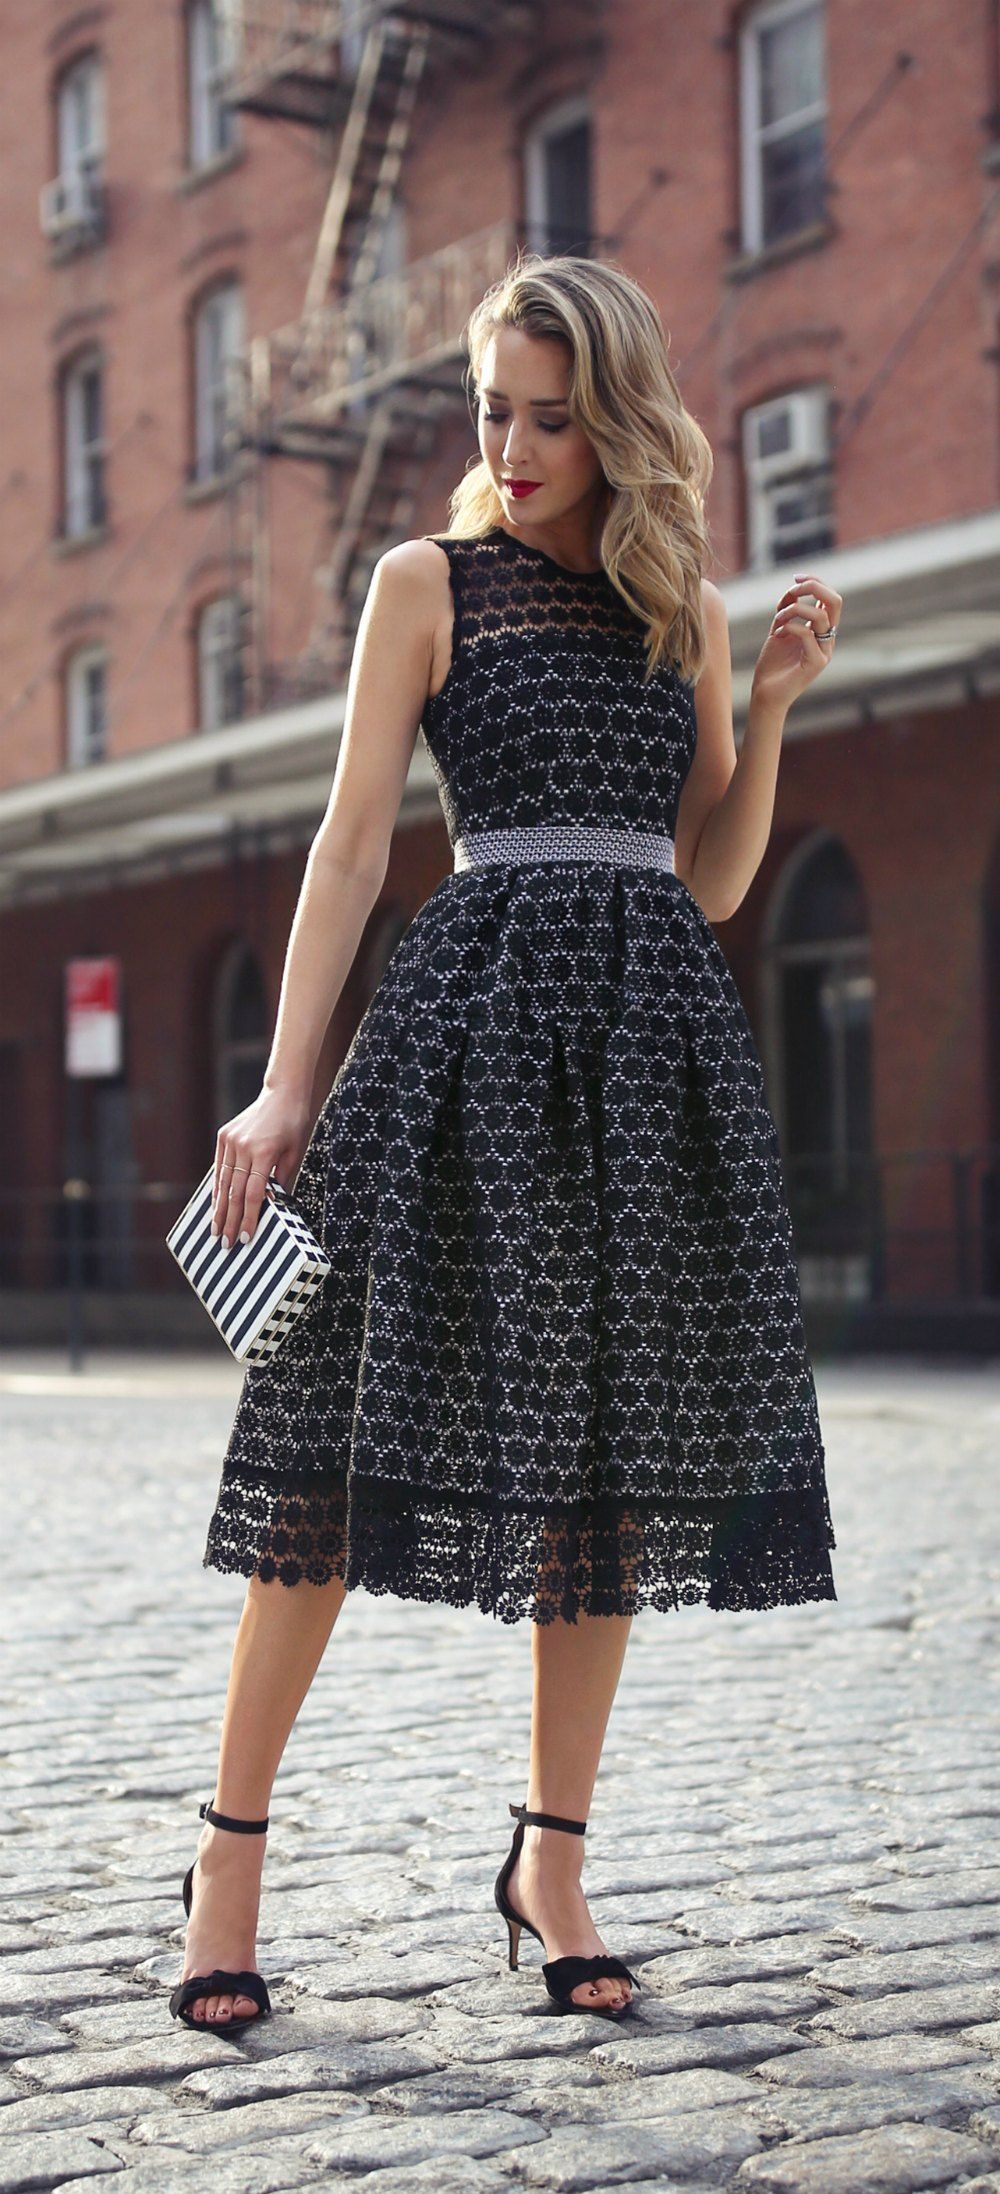 Lace ring dresses